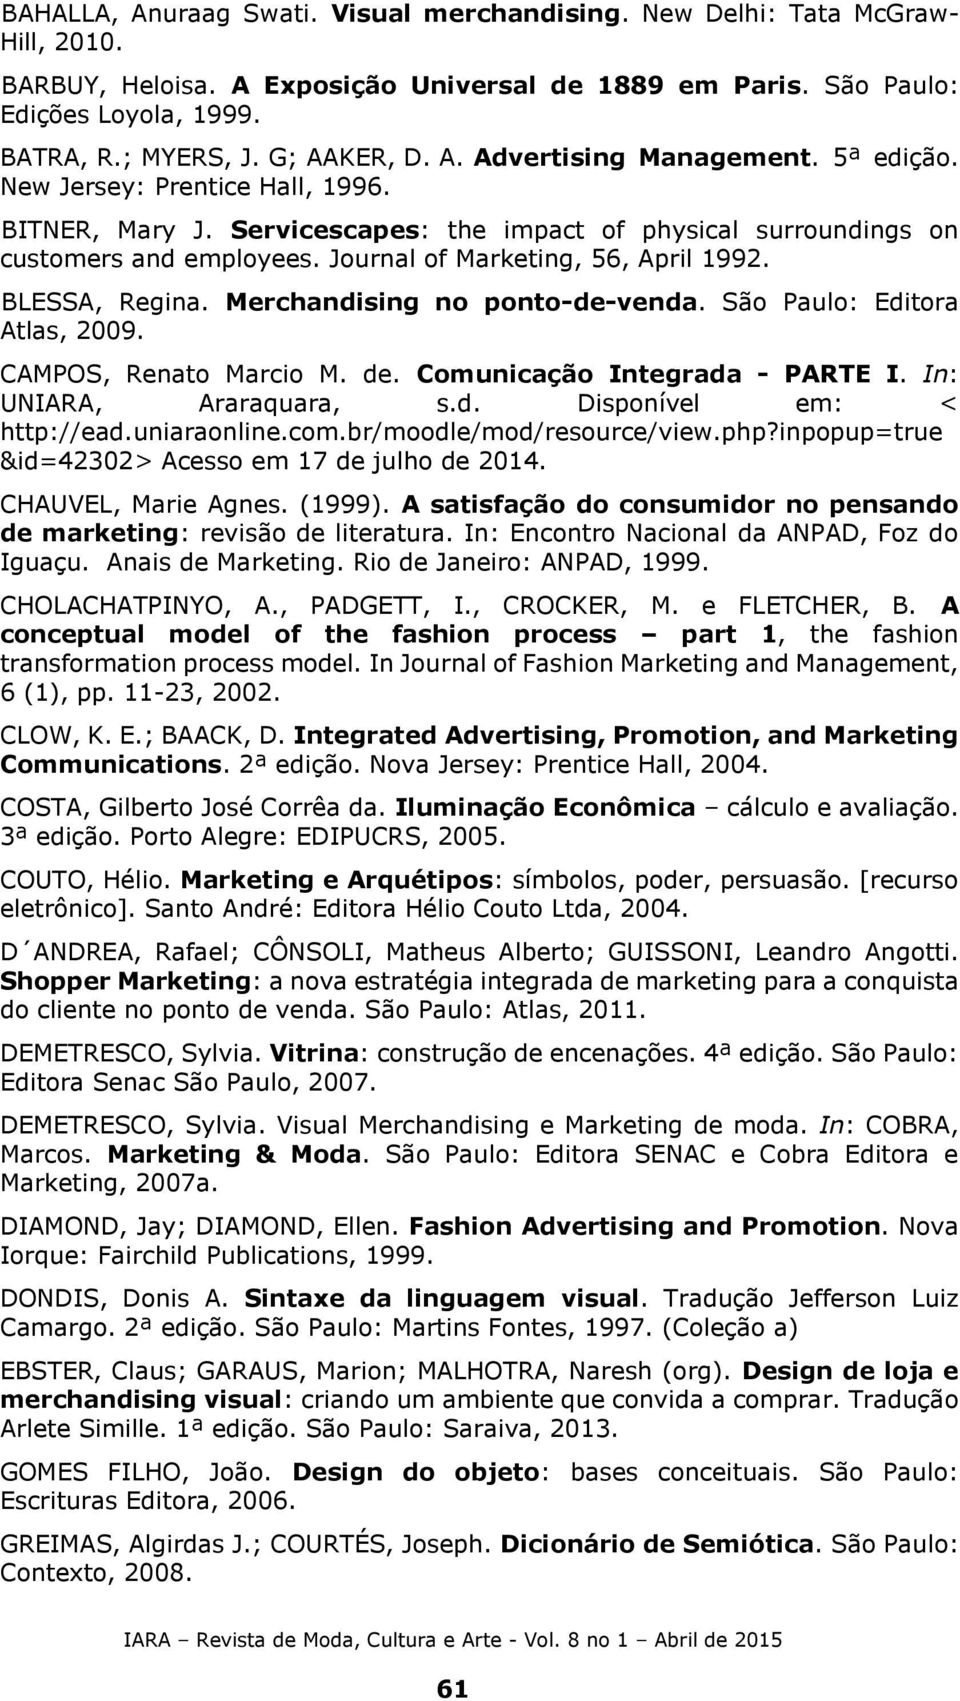 Journal of Marketing, 56, April 1992. BLESSA, Regina. Merchandising no ponto-de-venda. São Paulo: Editora Atlas, 2009. CAMPOS, Renato Marcio M. de. Comunicação Integrada - PARTE I.